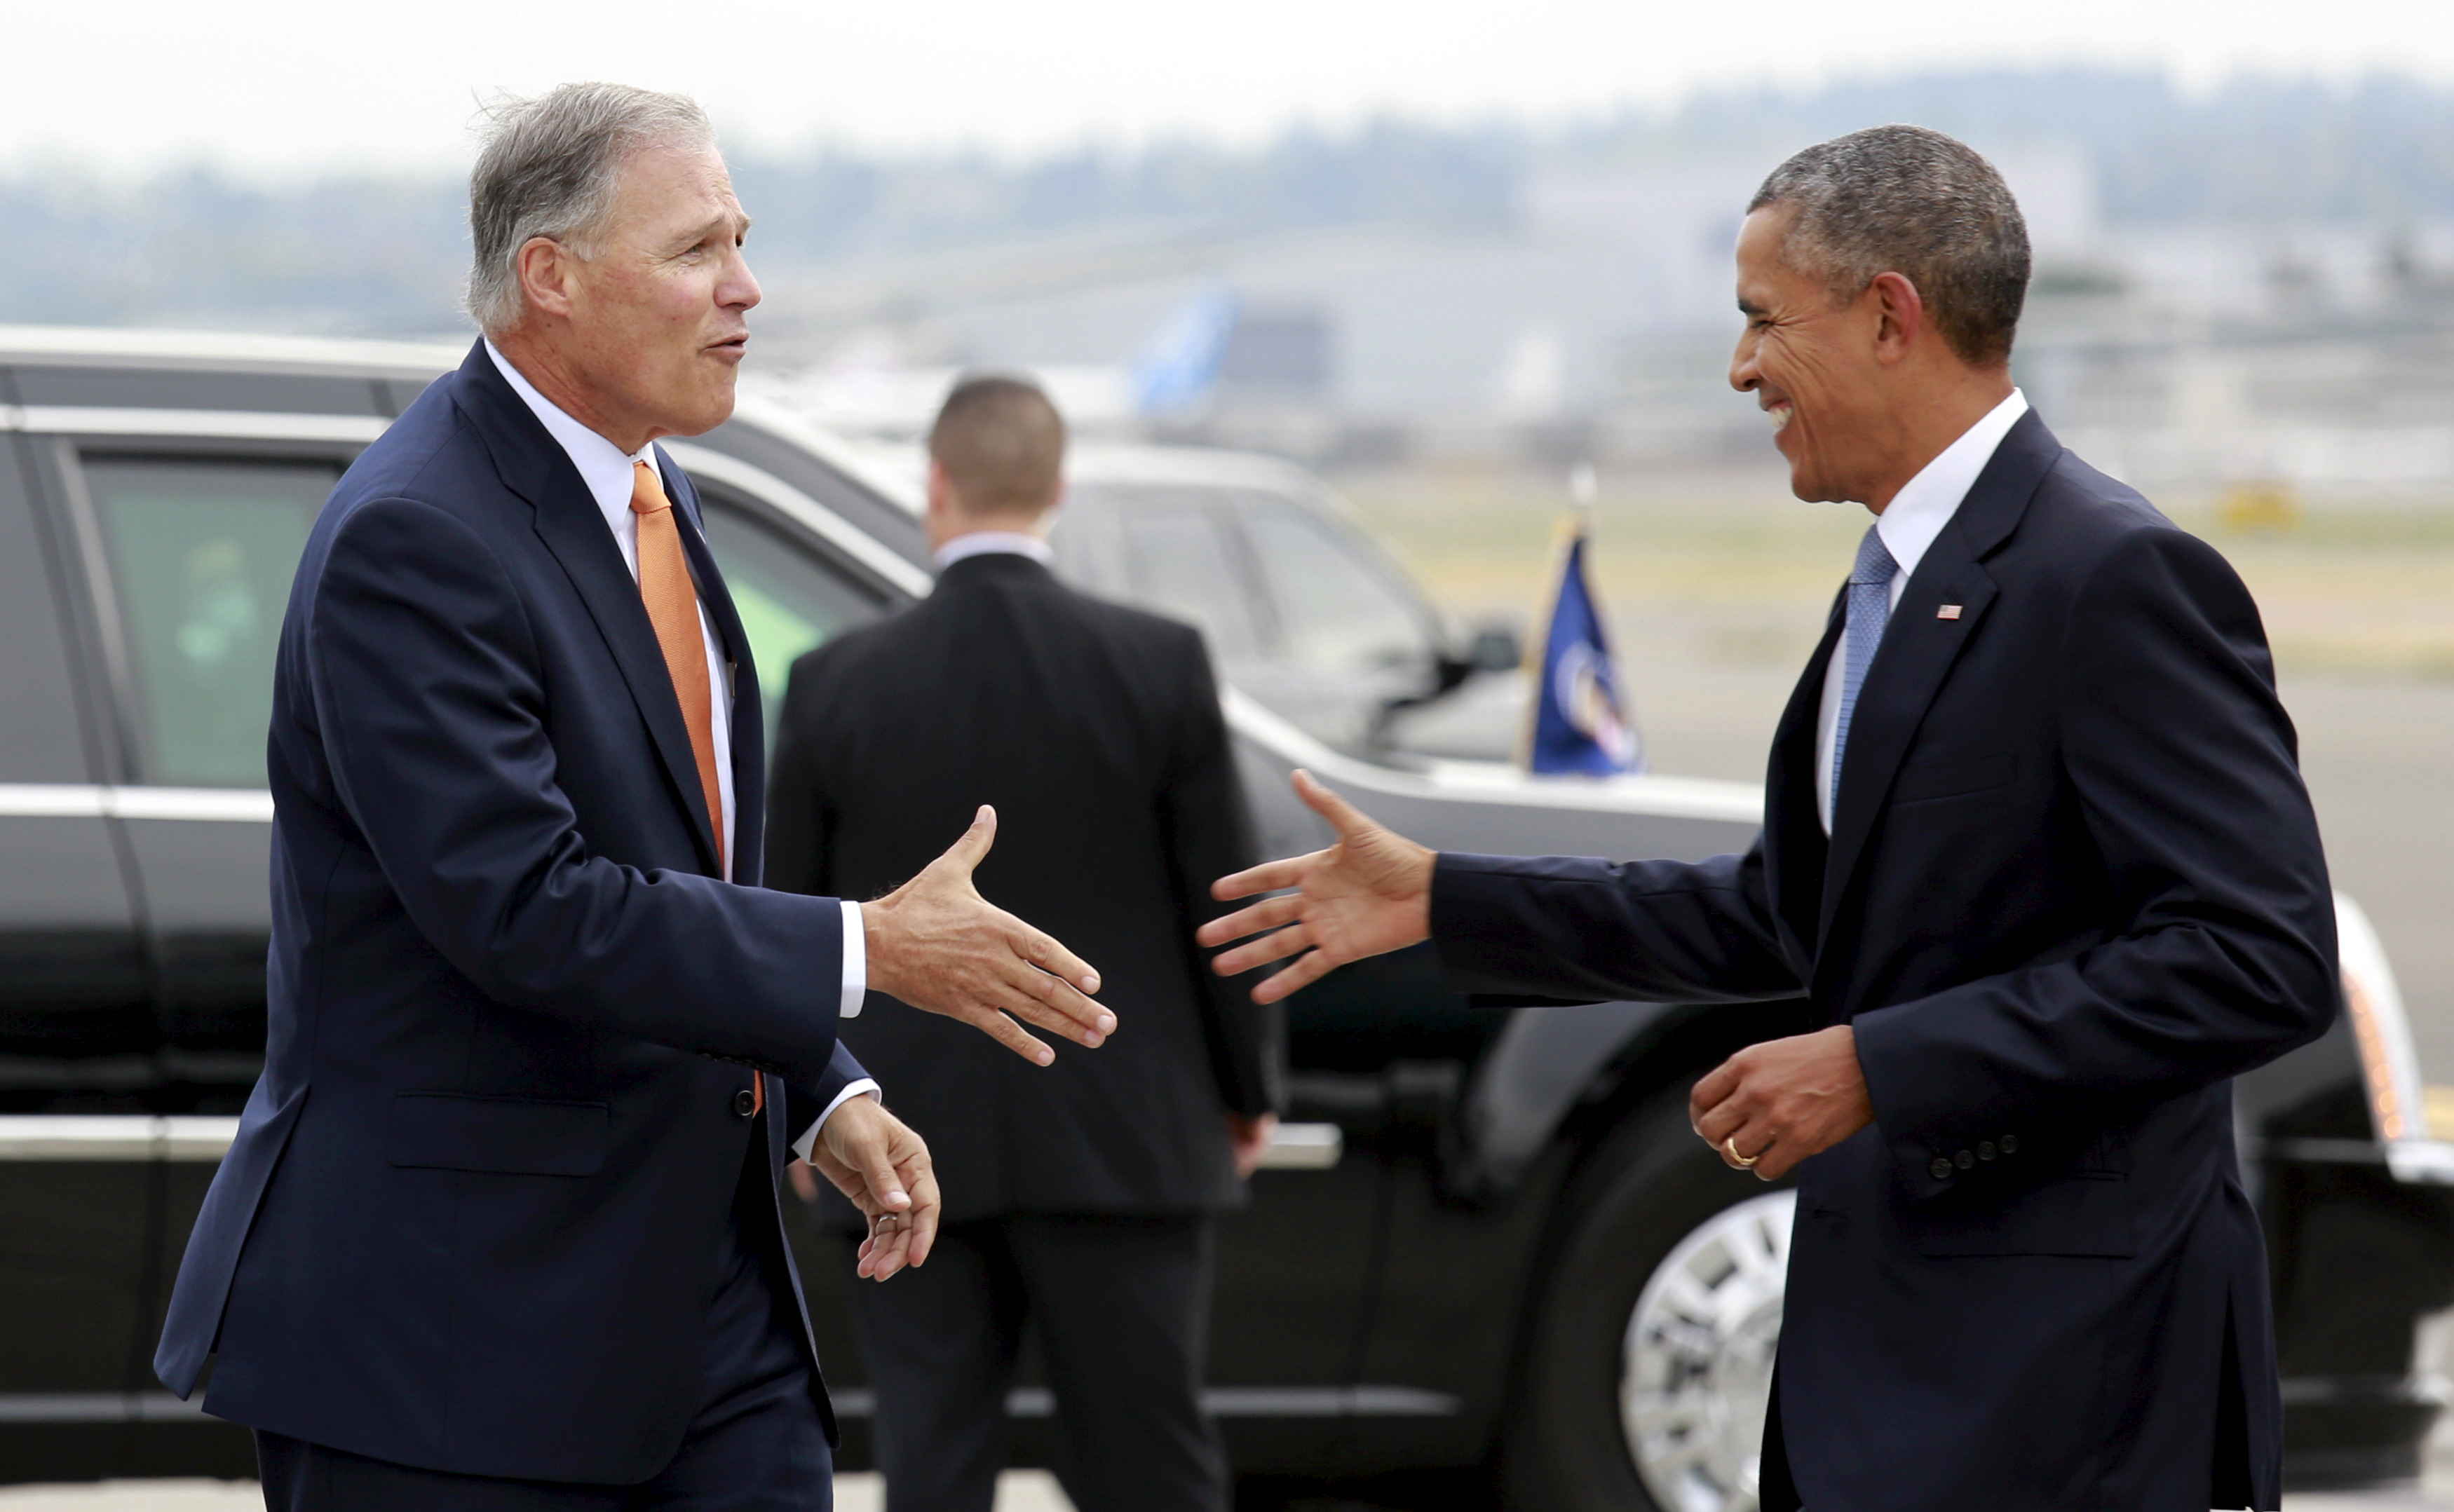 U.S. President Obama is welcomed by Washington Governor Inslee upon his arrival in Seattle, Washington